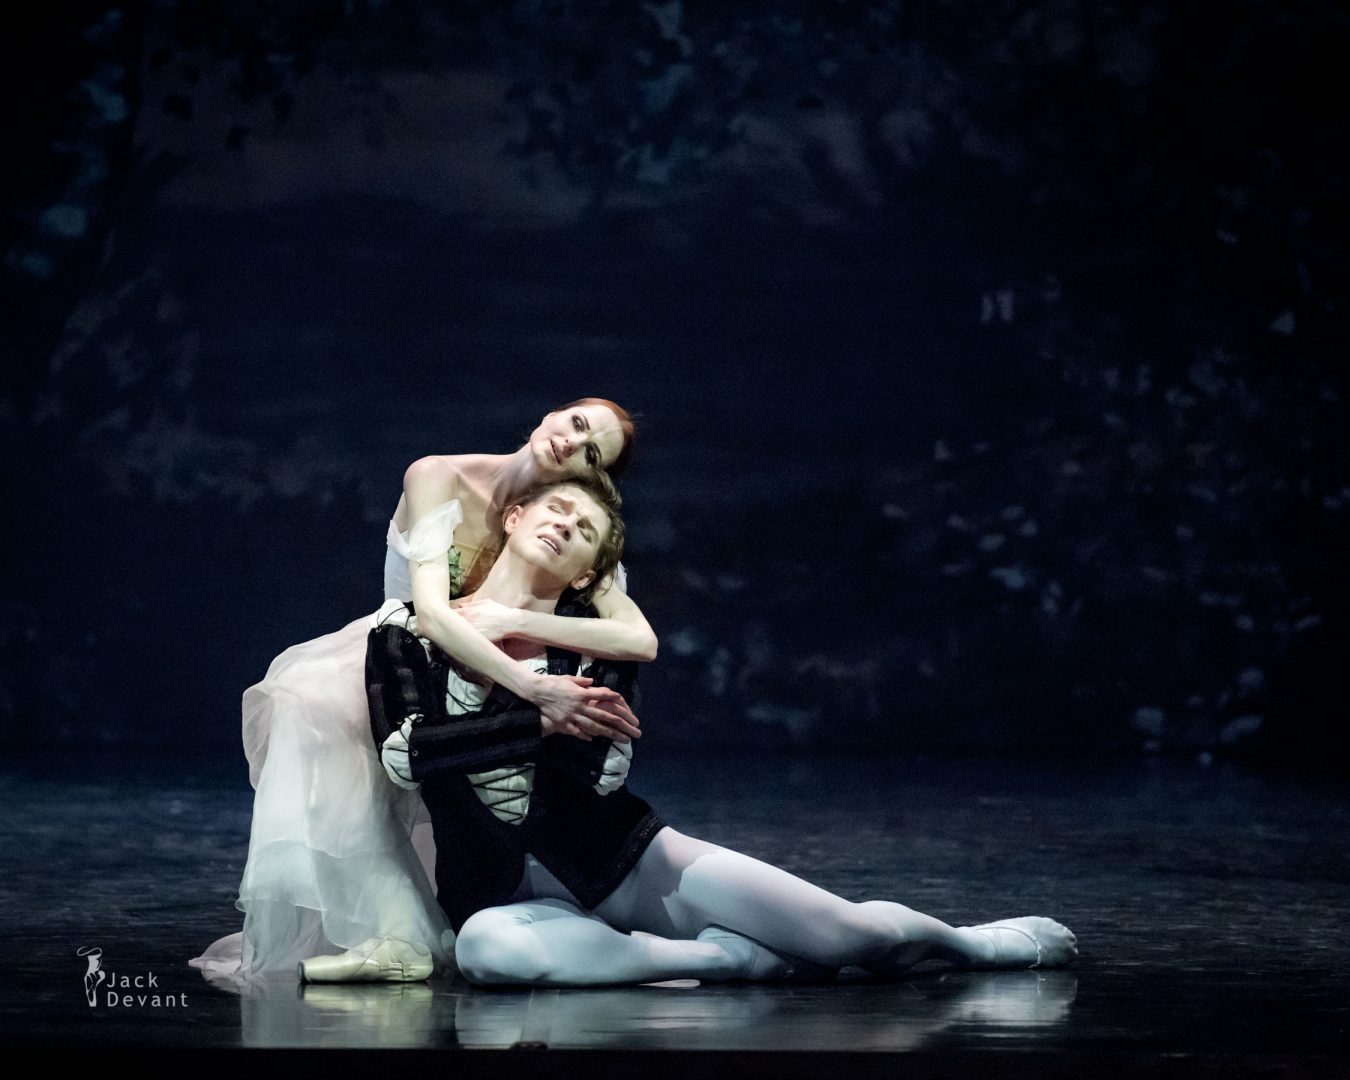 Alena Shkatula as Giselle and Denis Klimuk as Albrecht in Giselle Act 2 sunrise